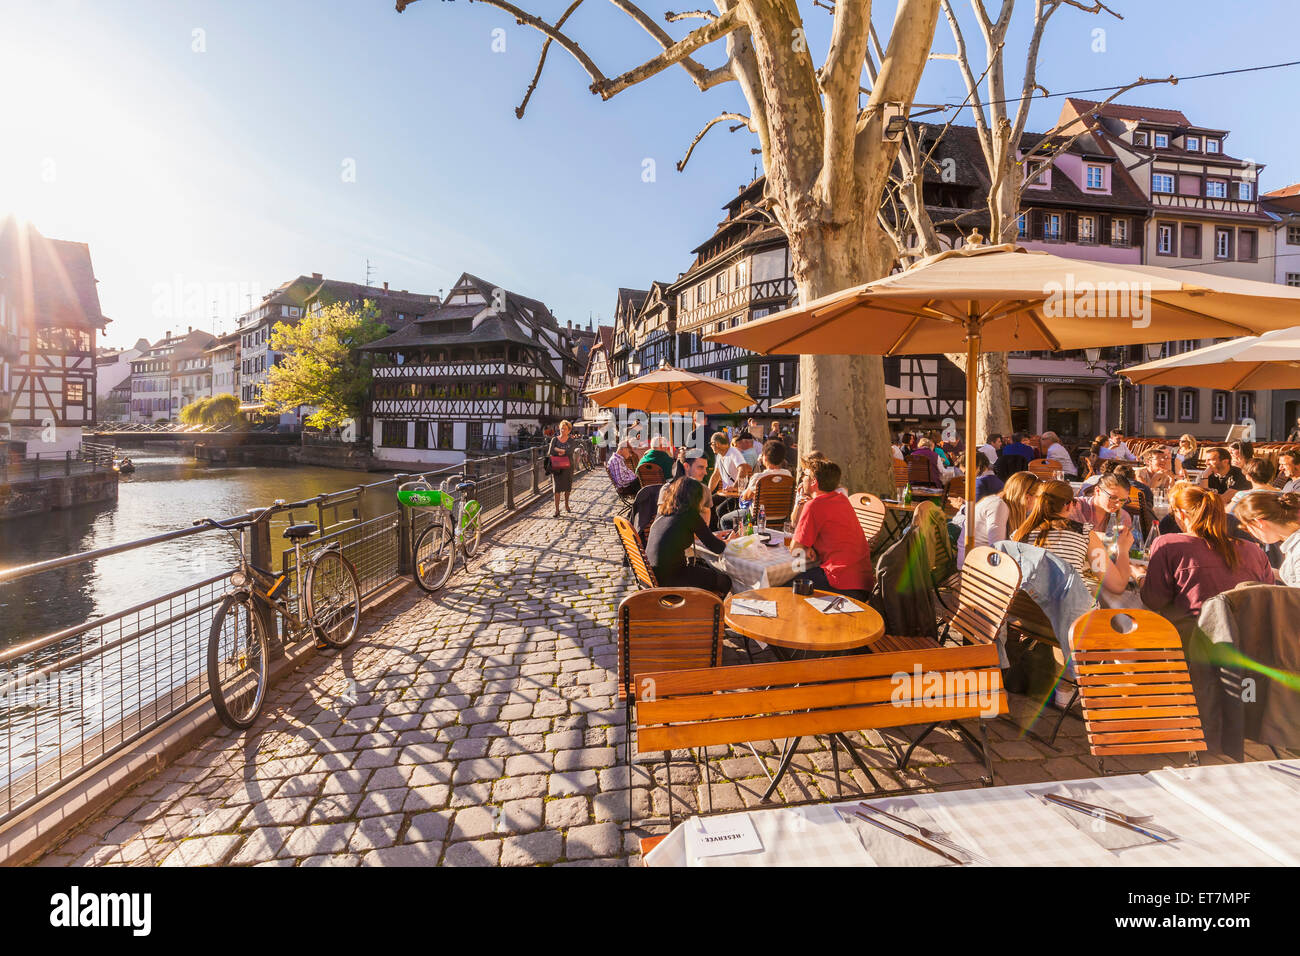 France, Strassbourg, Half-timbered houses at Ill river - Stock Image